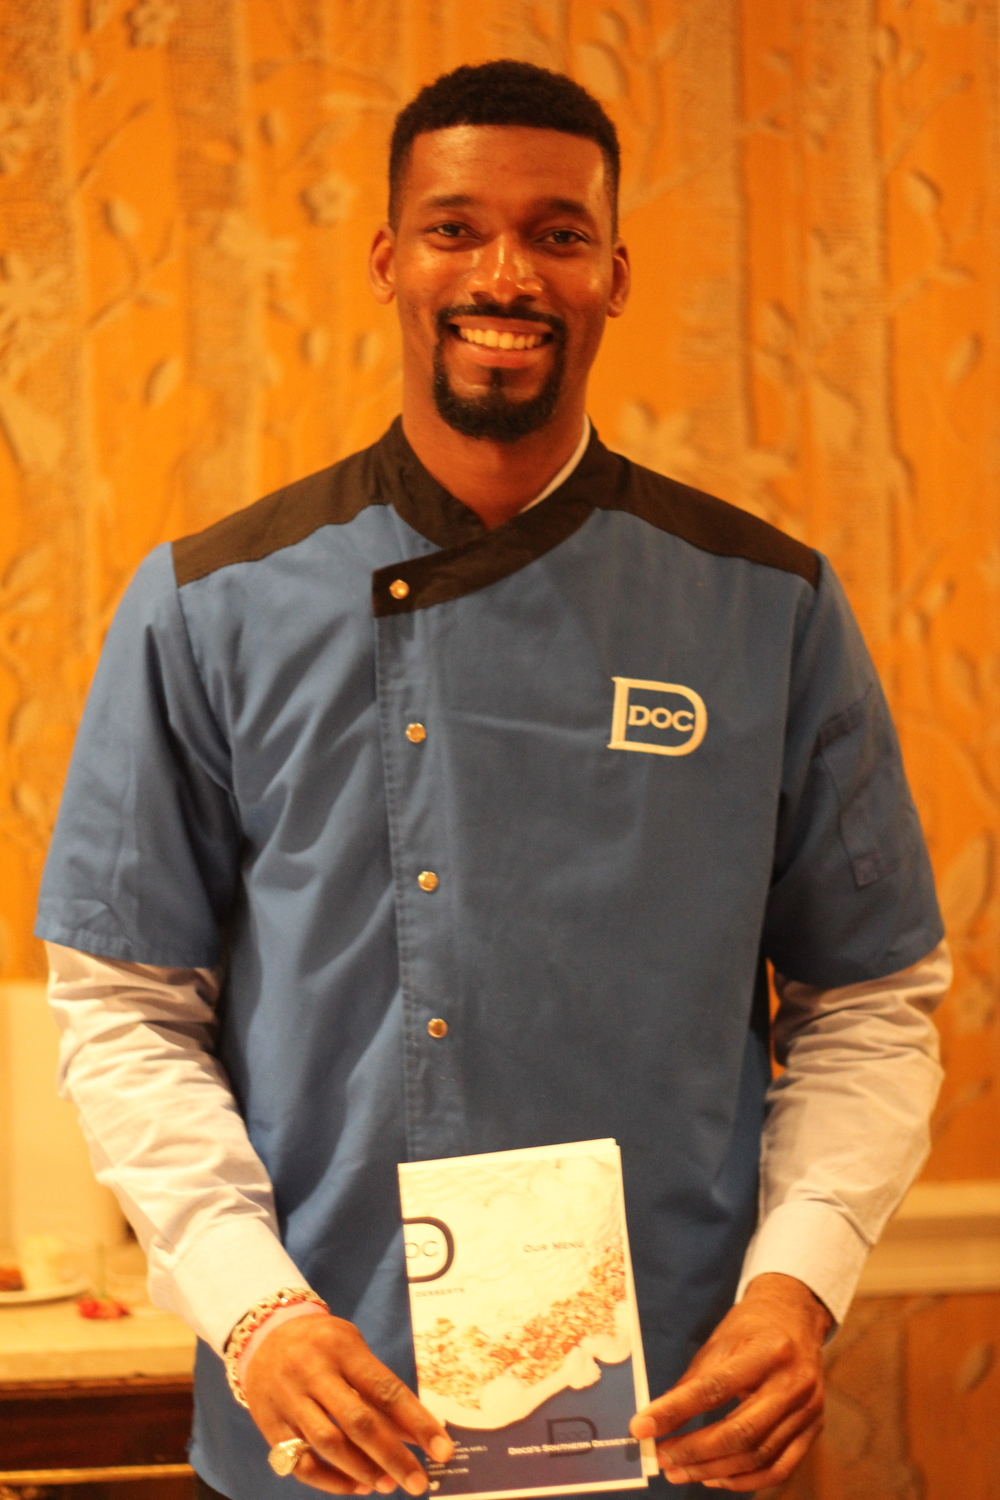 Doc D from Doc D's Southern Desserts in Brooklyn!  www.DocDsDesserts.com